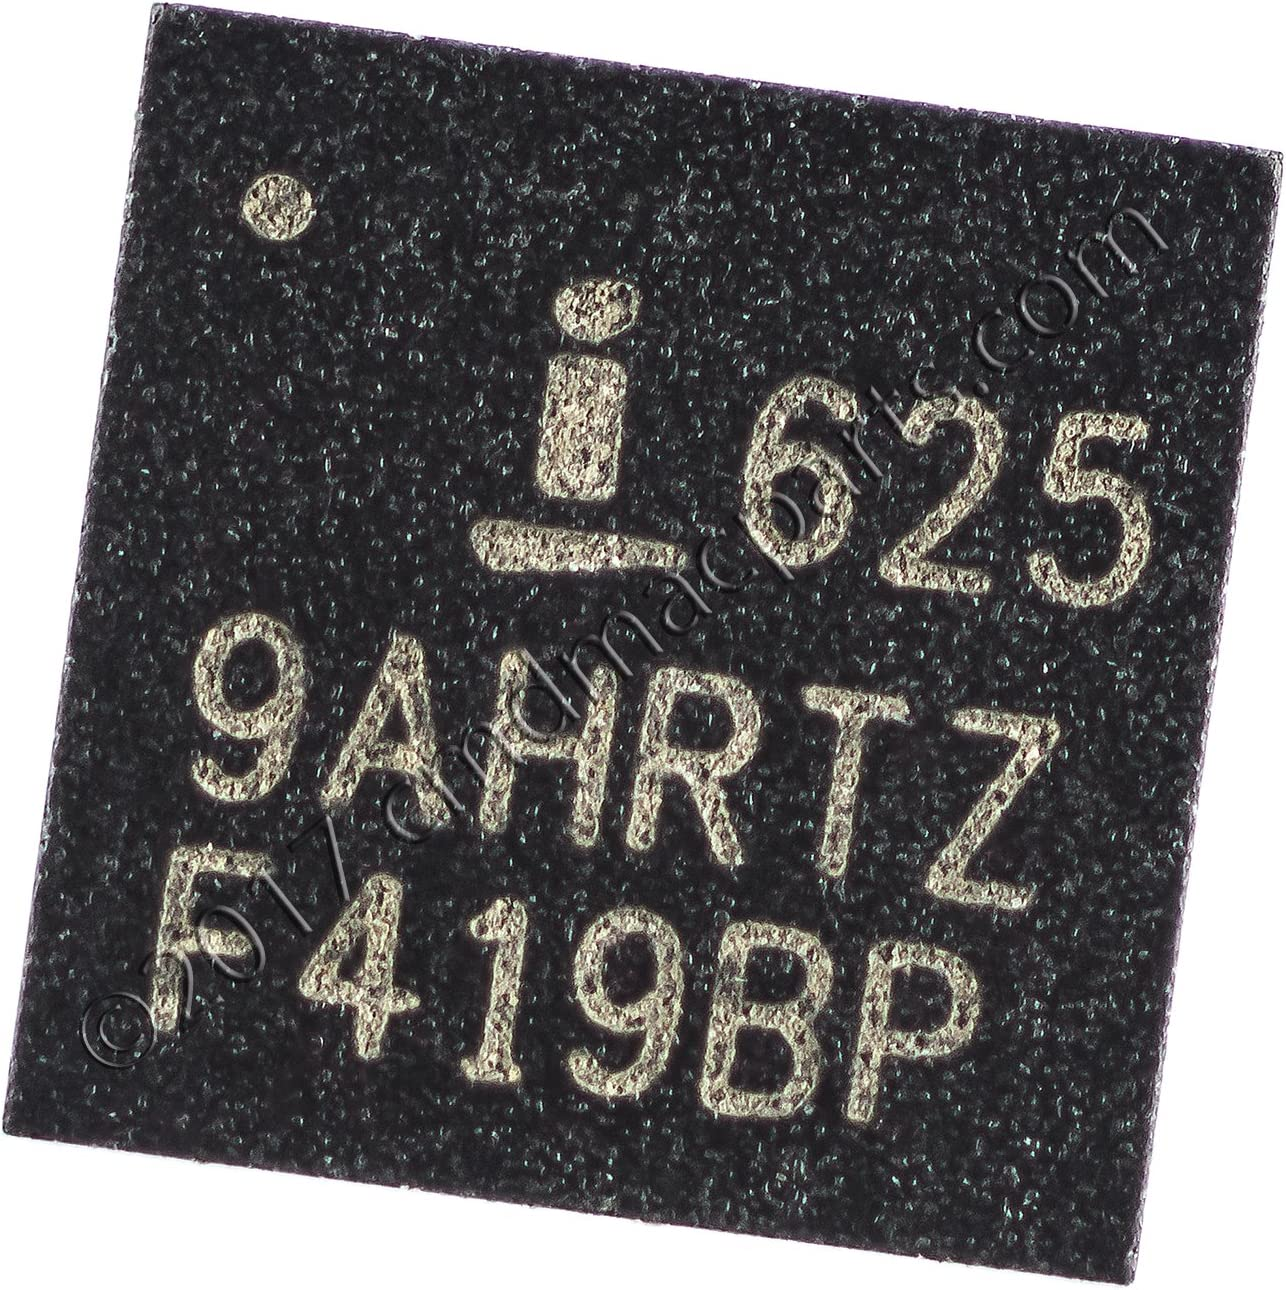 Odyson - QFN Power IC Charging Chip (28-Pin) Replacement for MacBook Pro (2010-2012), Retina (2012-2015), Air (2010-2015)